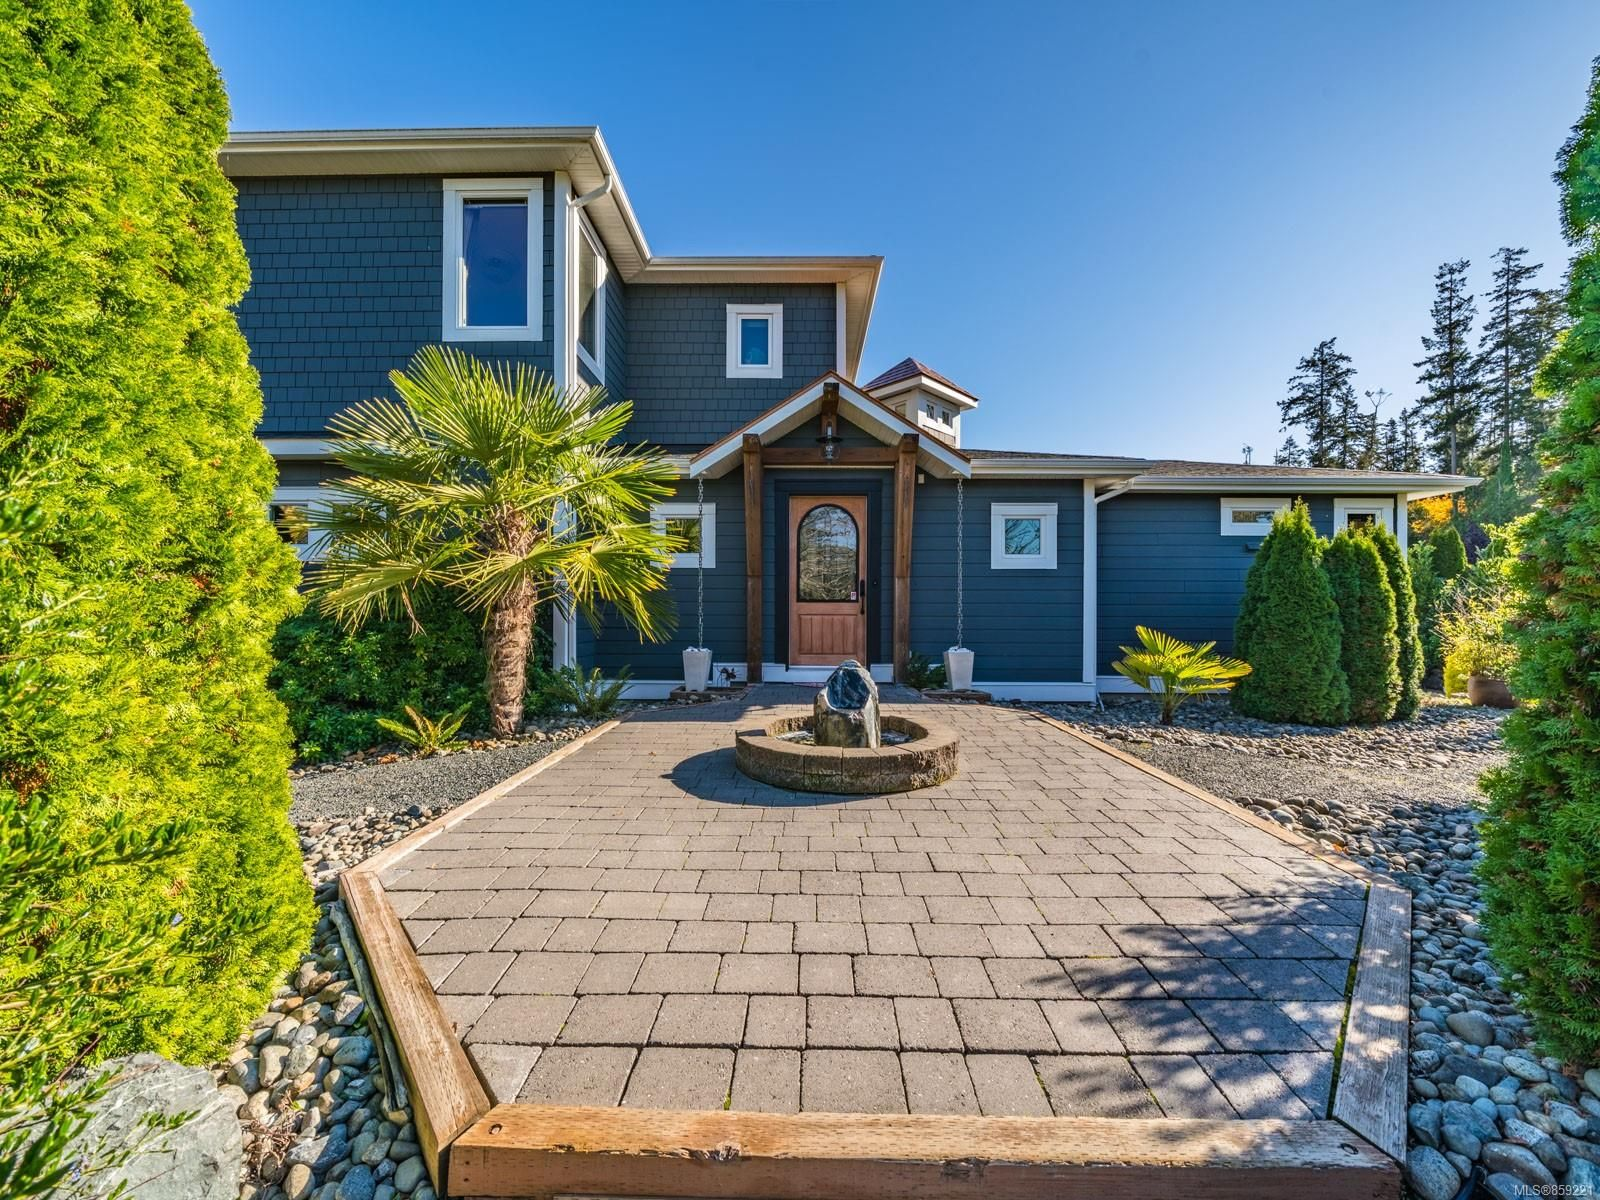 Main Photo: 487 COLUMBIA Dr in : PQ Parksville House for sale (Parksville/Qualicum)  : MLS®# 859221